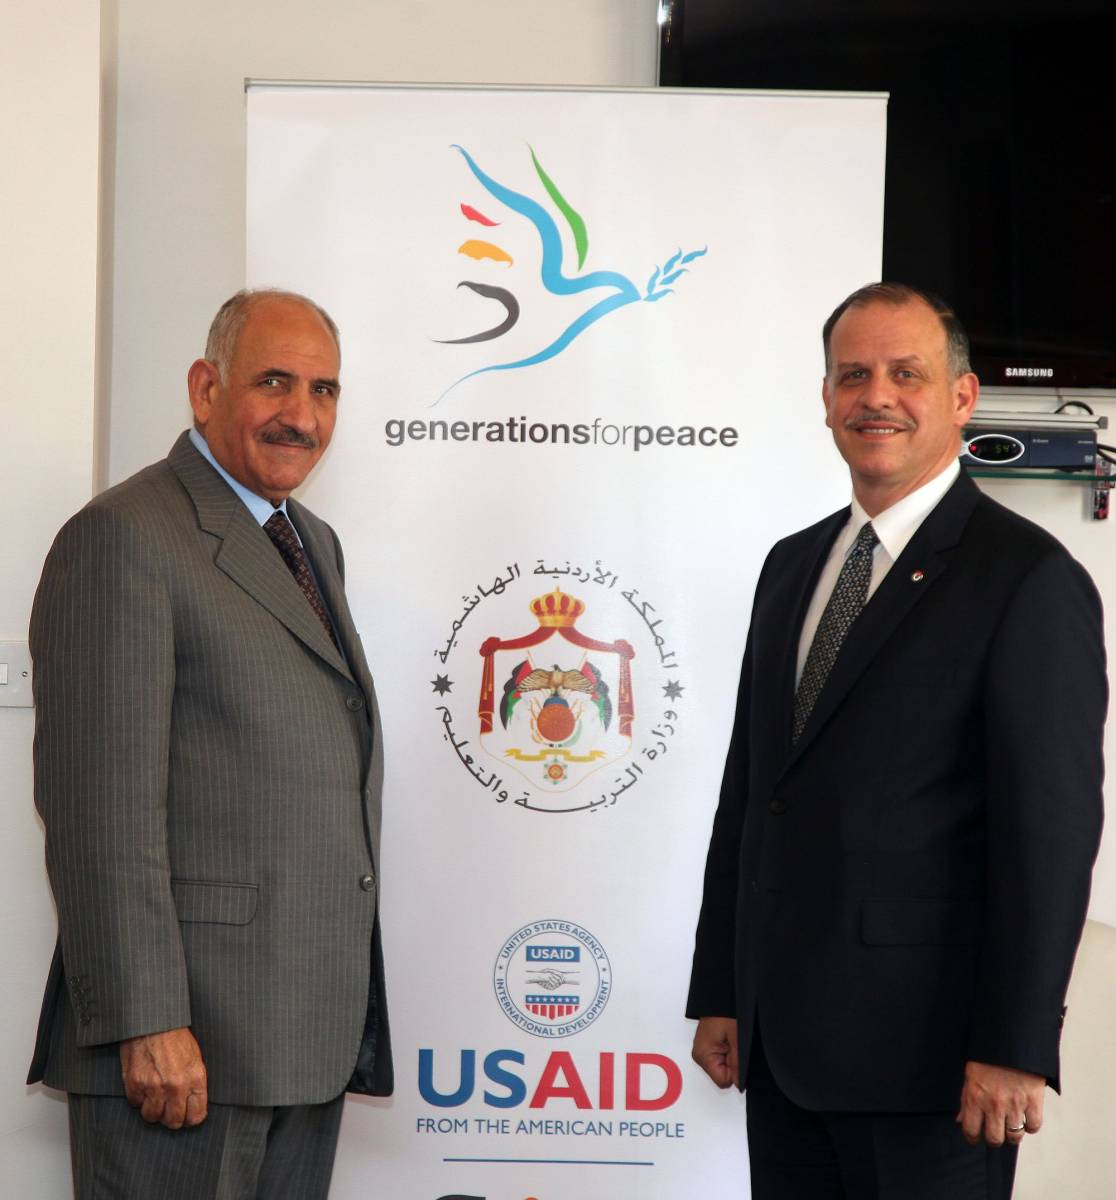 Generations-for-peace-2015-MoE-Ministry-Education-HRH-Prince-Feisal-Minister-Agreement